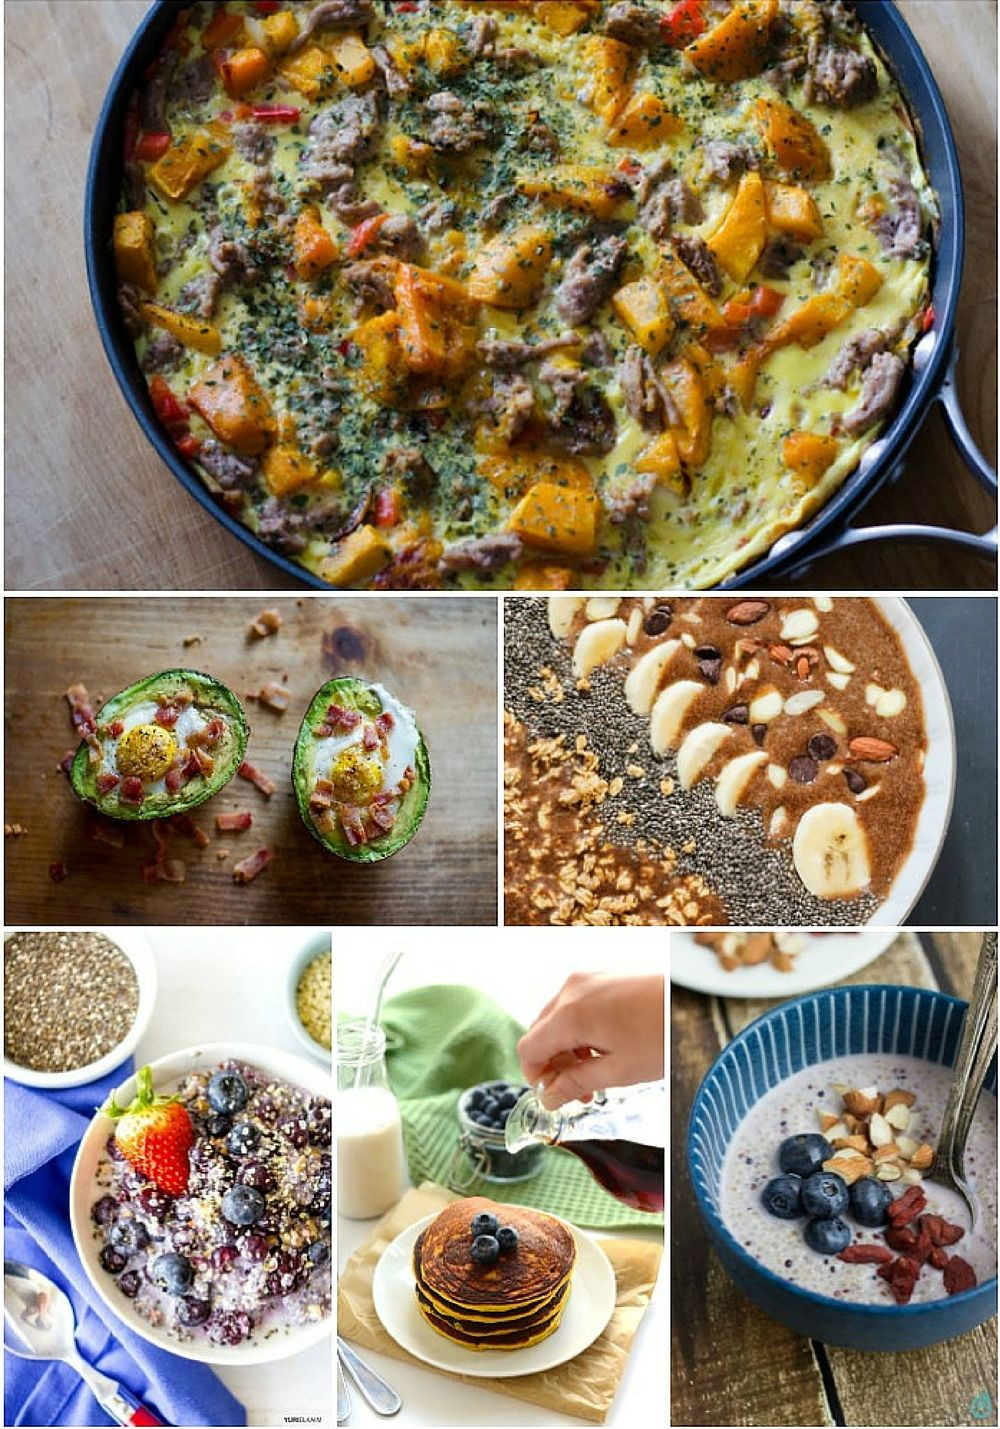 Healthy Protein Breakfast  21 Healthy High Protein Breakfasts You Need to Make